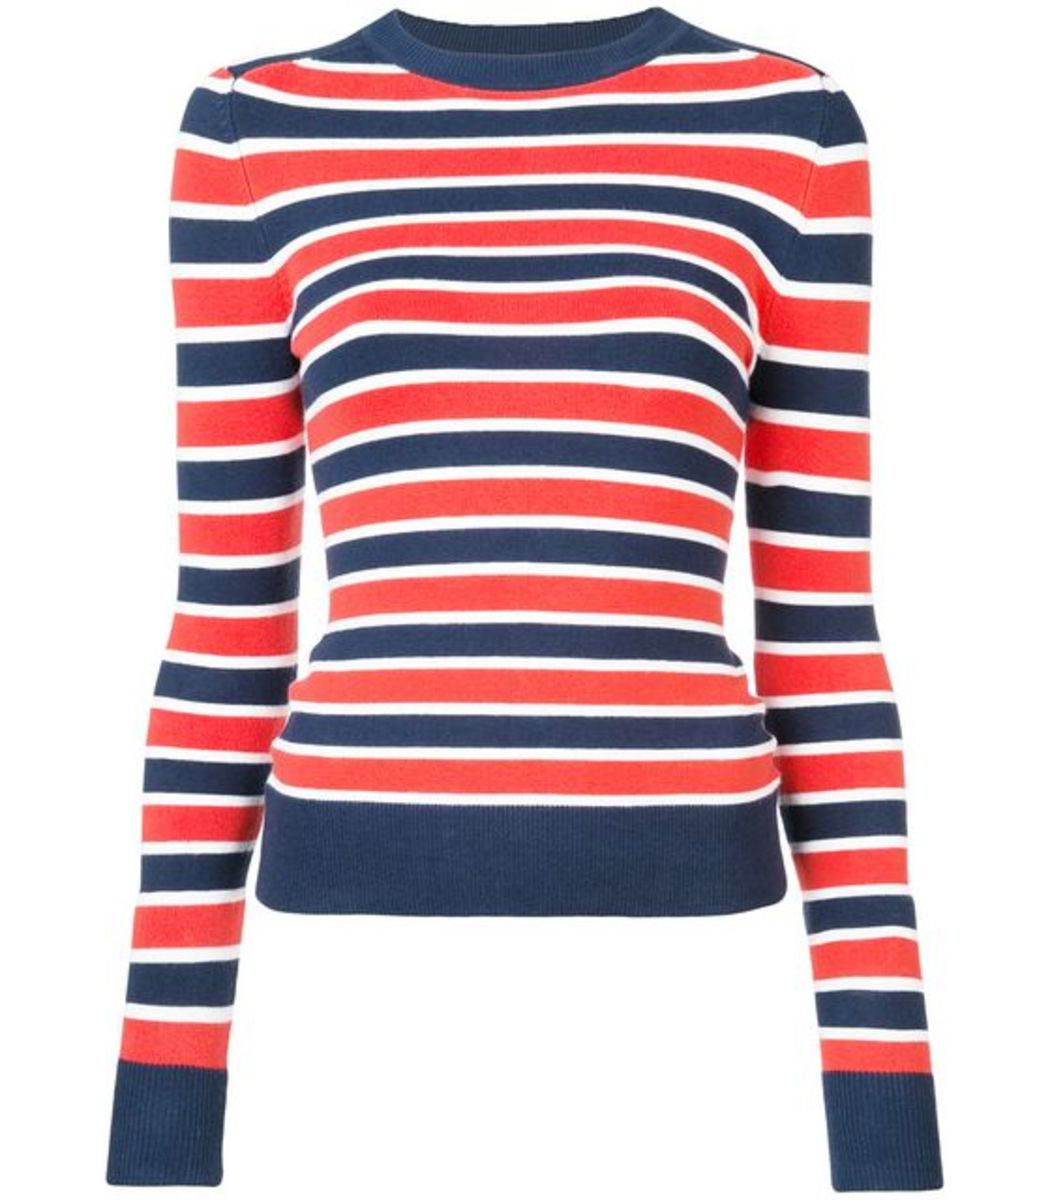 JOOSTRICOT Navy/Red Striped Sweater